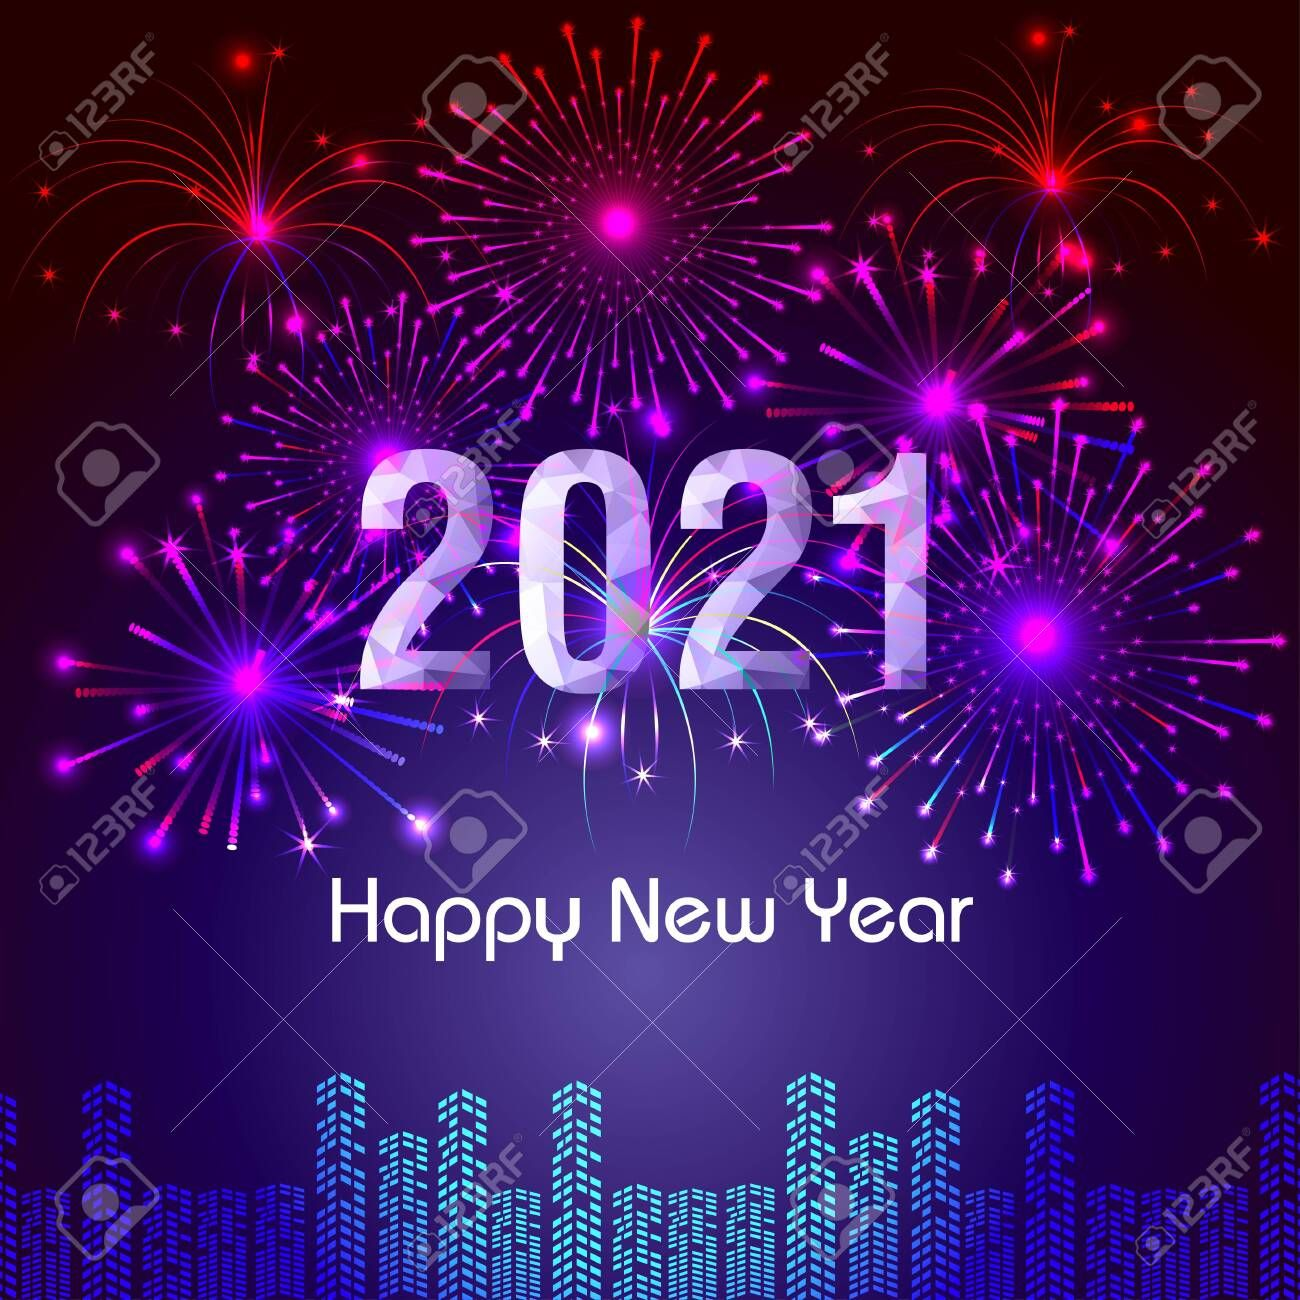 Happy New Year 2021 in 2020 Happy new year greetings